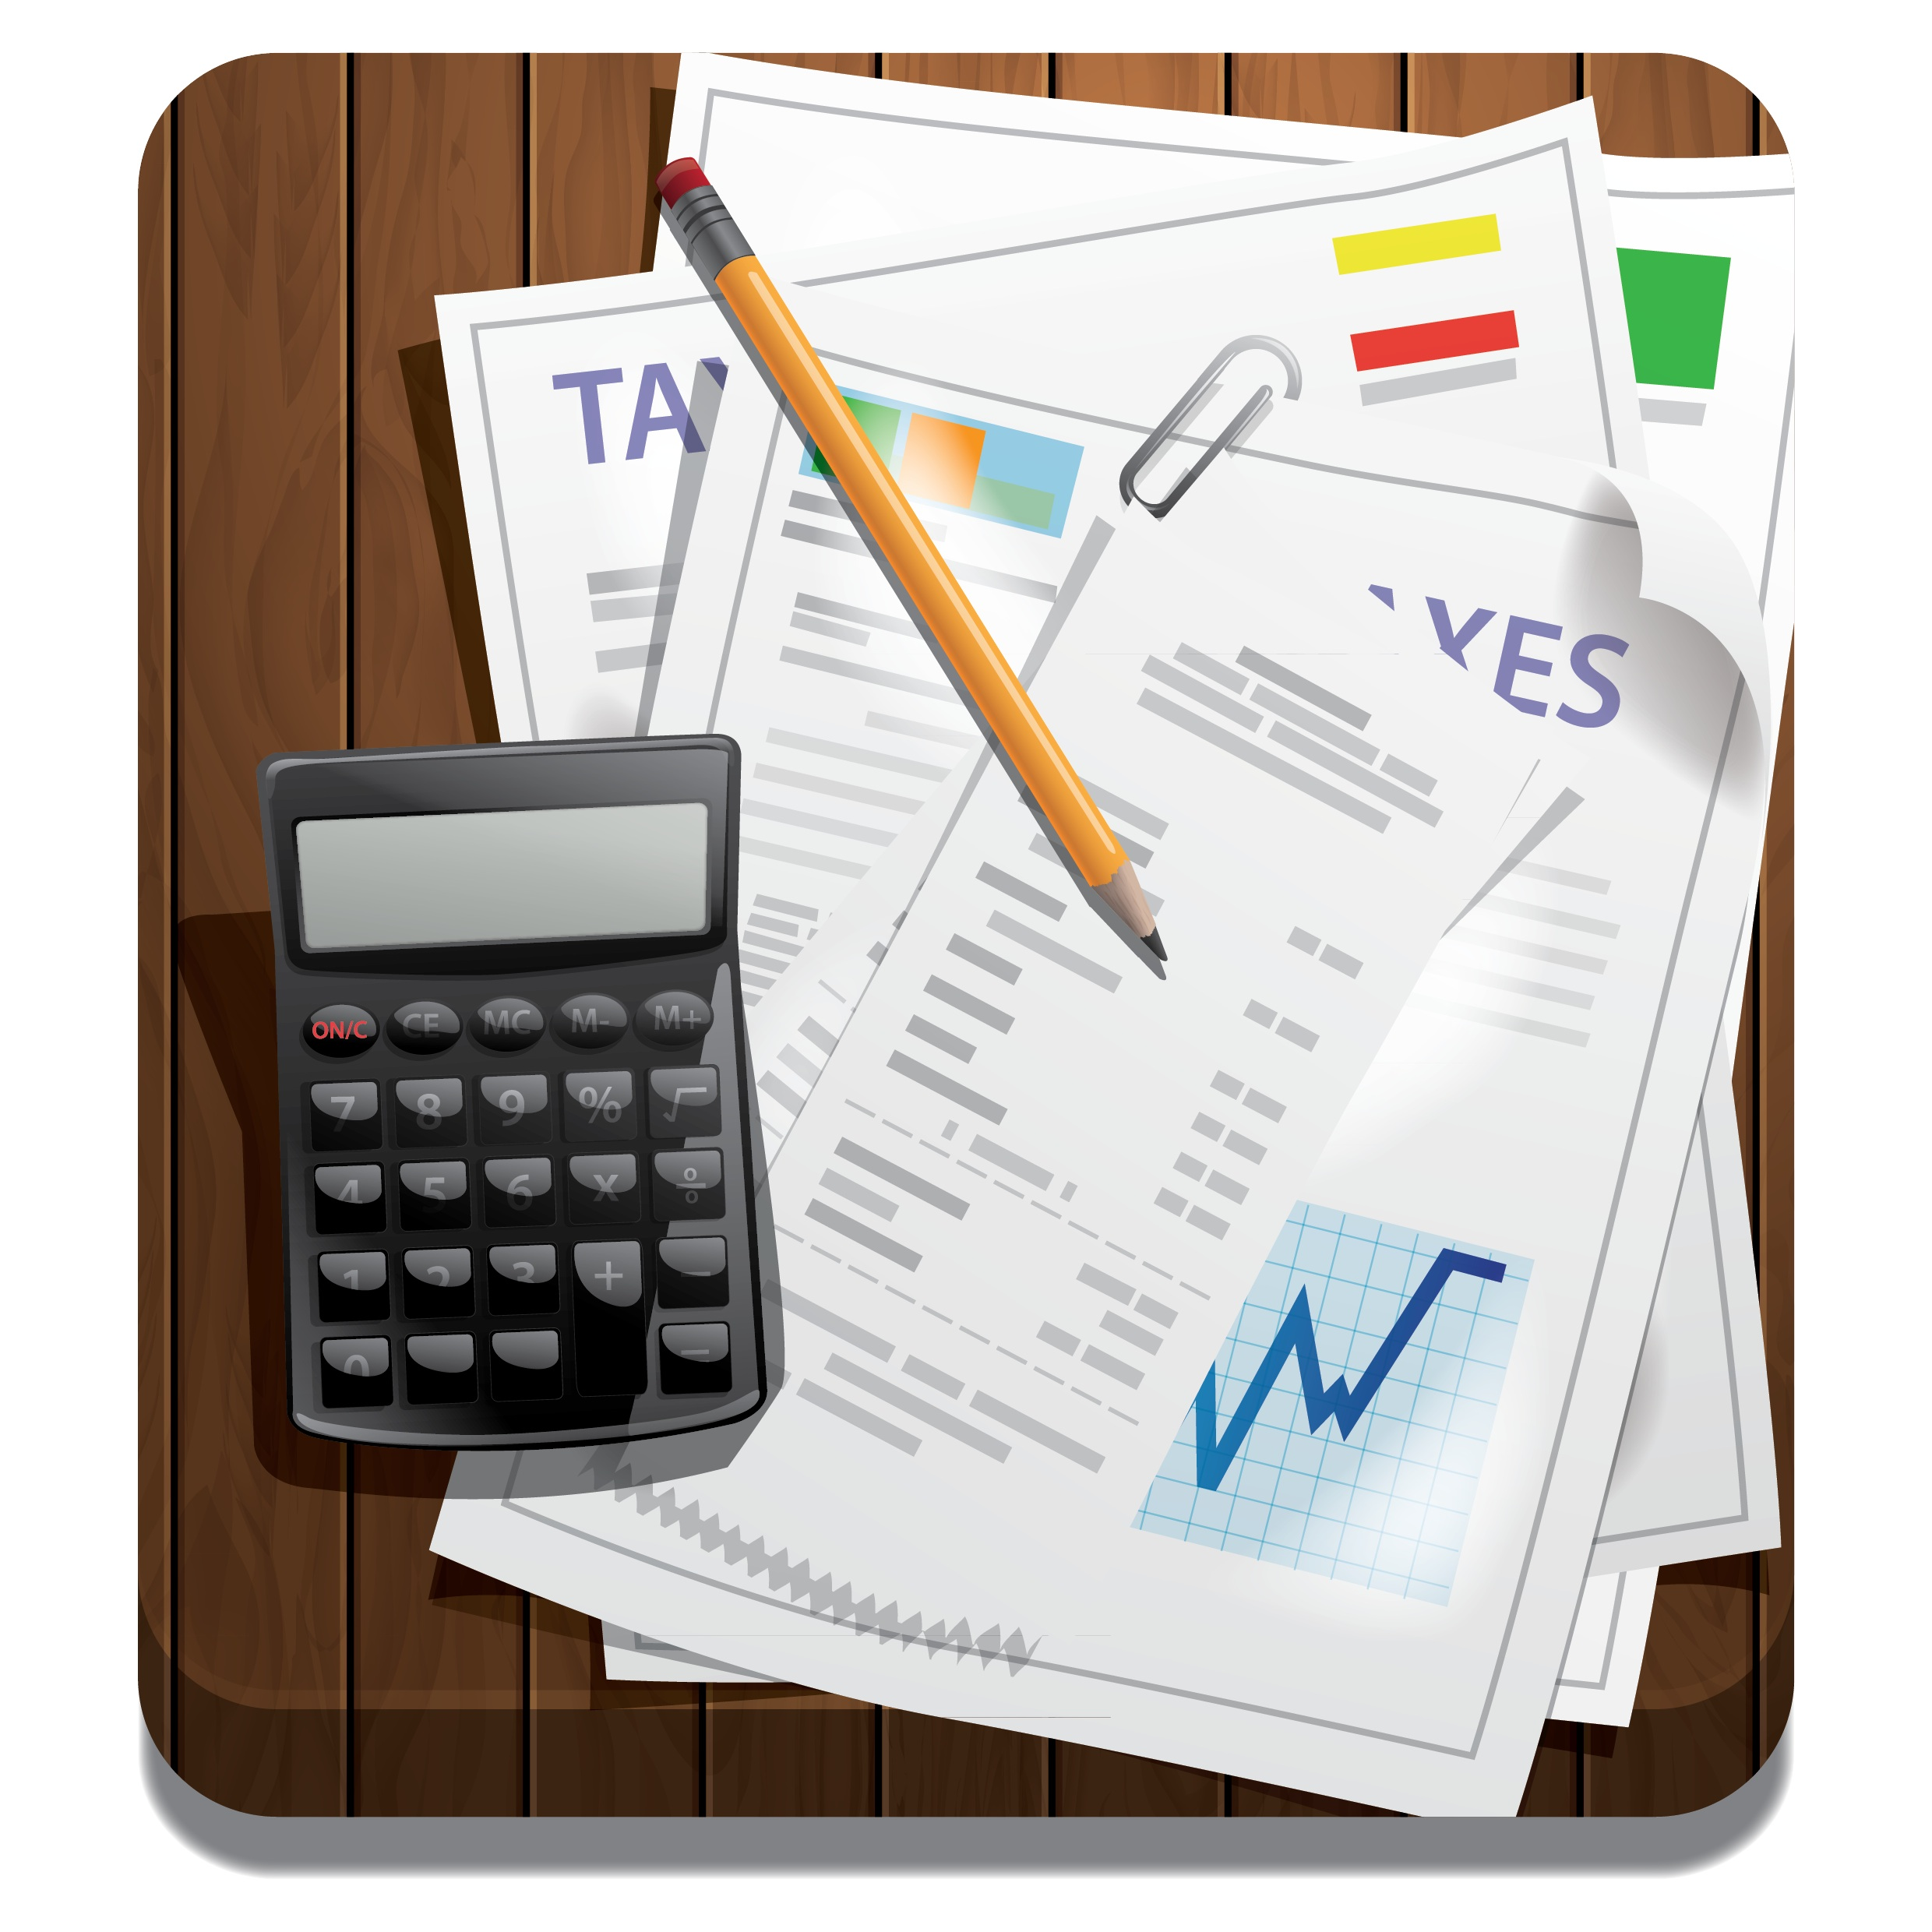 accounts receivable crisis Free essays on you decide hsm 543 accounts receivable crisis for students use our papers to help you with yours 1 - 30.